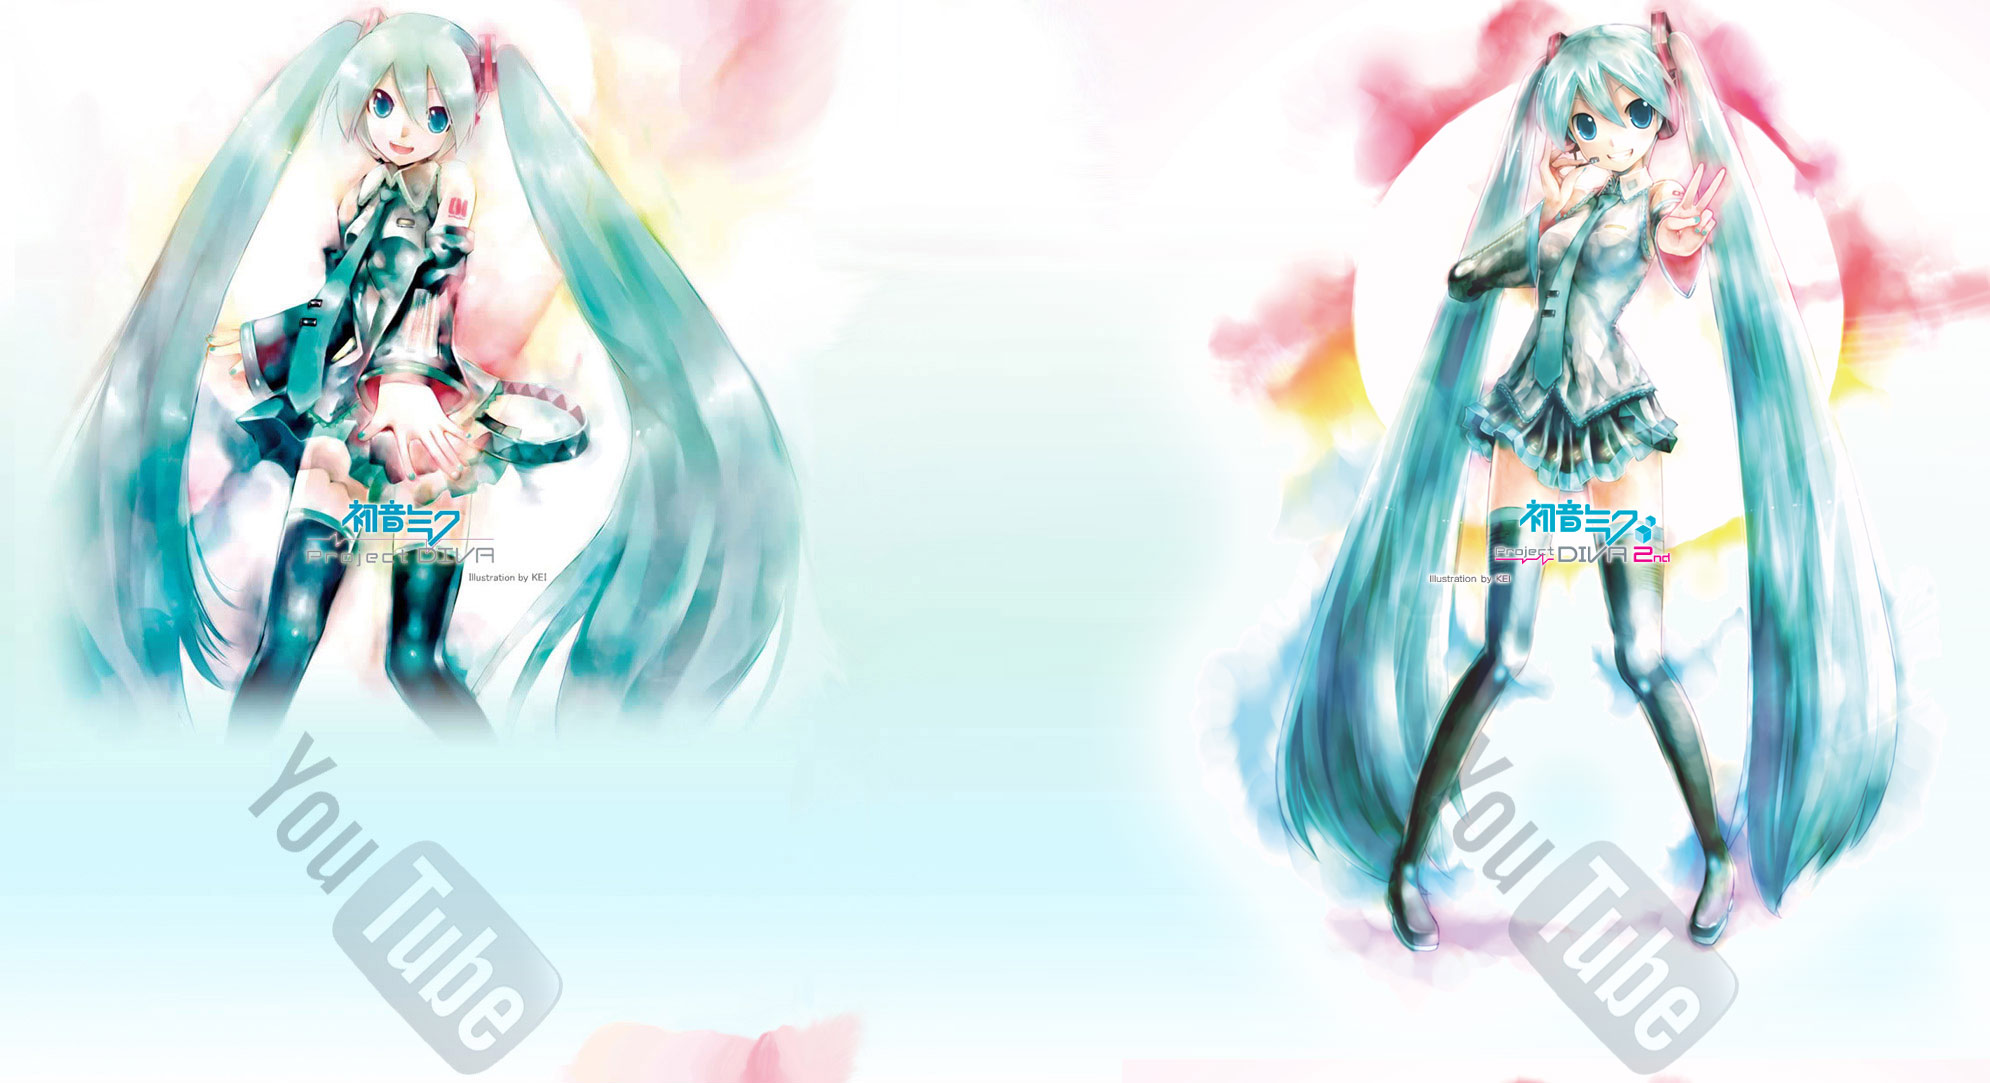 Project DIVA YoutubeChannel V2 by olivaaa